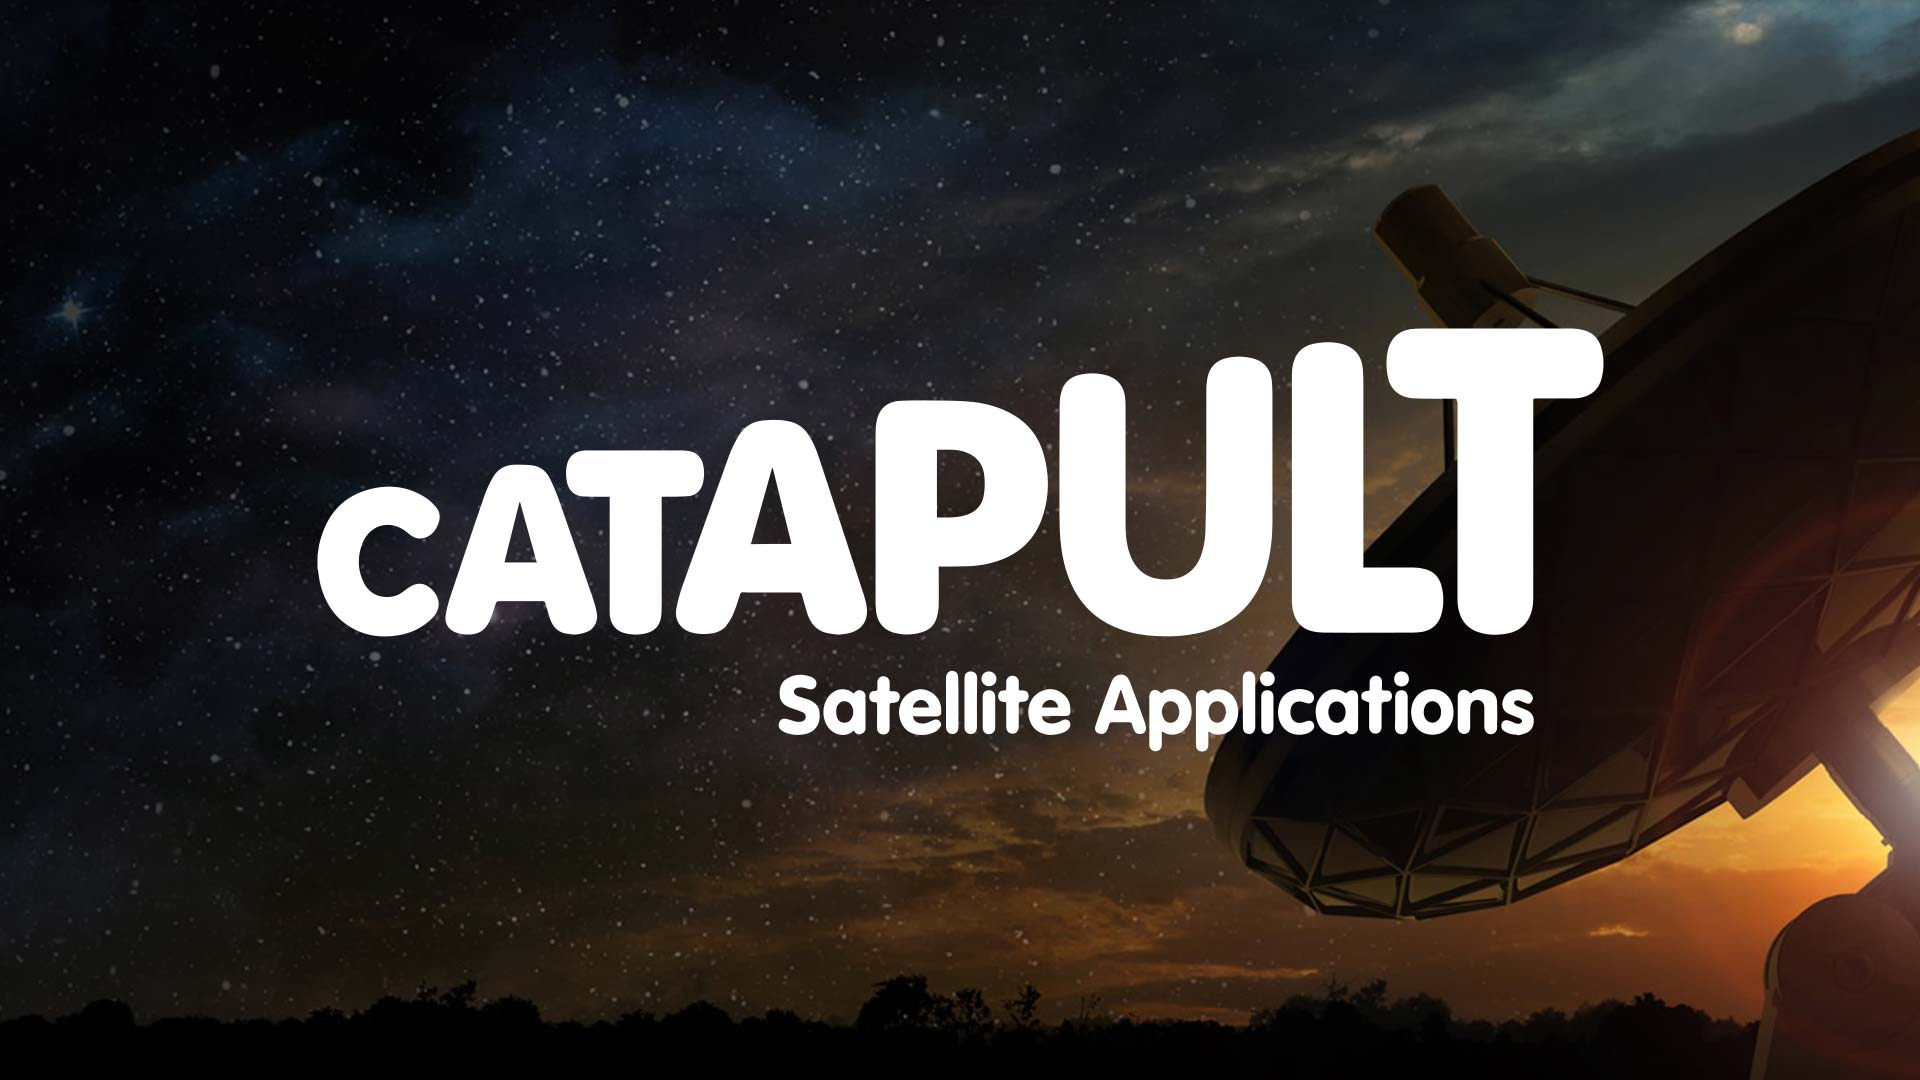 Satellite Applications Catapult Space Organisation Partner